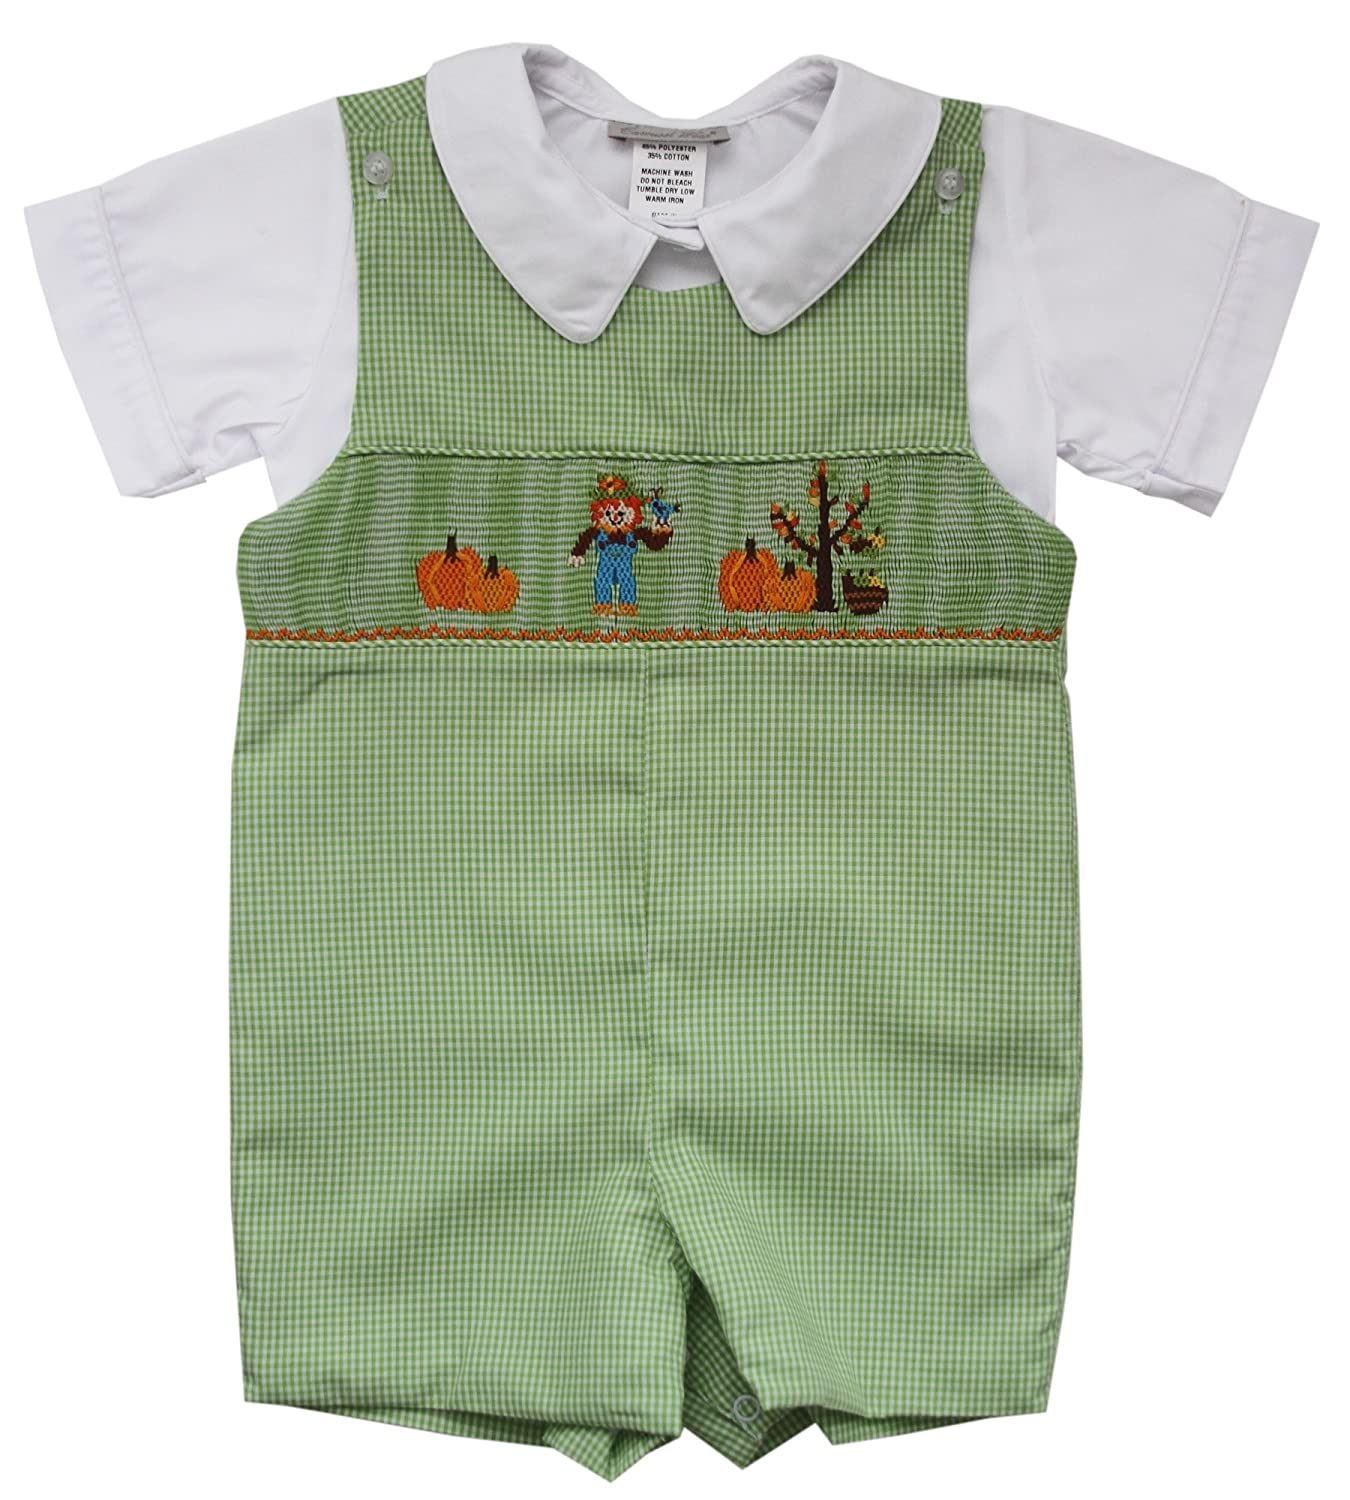 Carouselwear Boys Thanksgiving Shortall with Smocked Scarecrow and Pumpkins